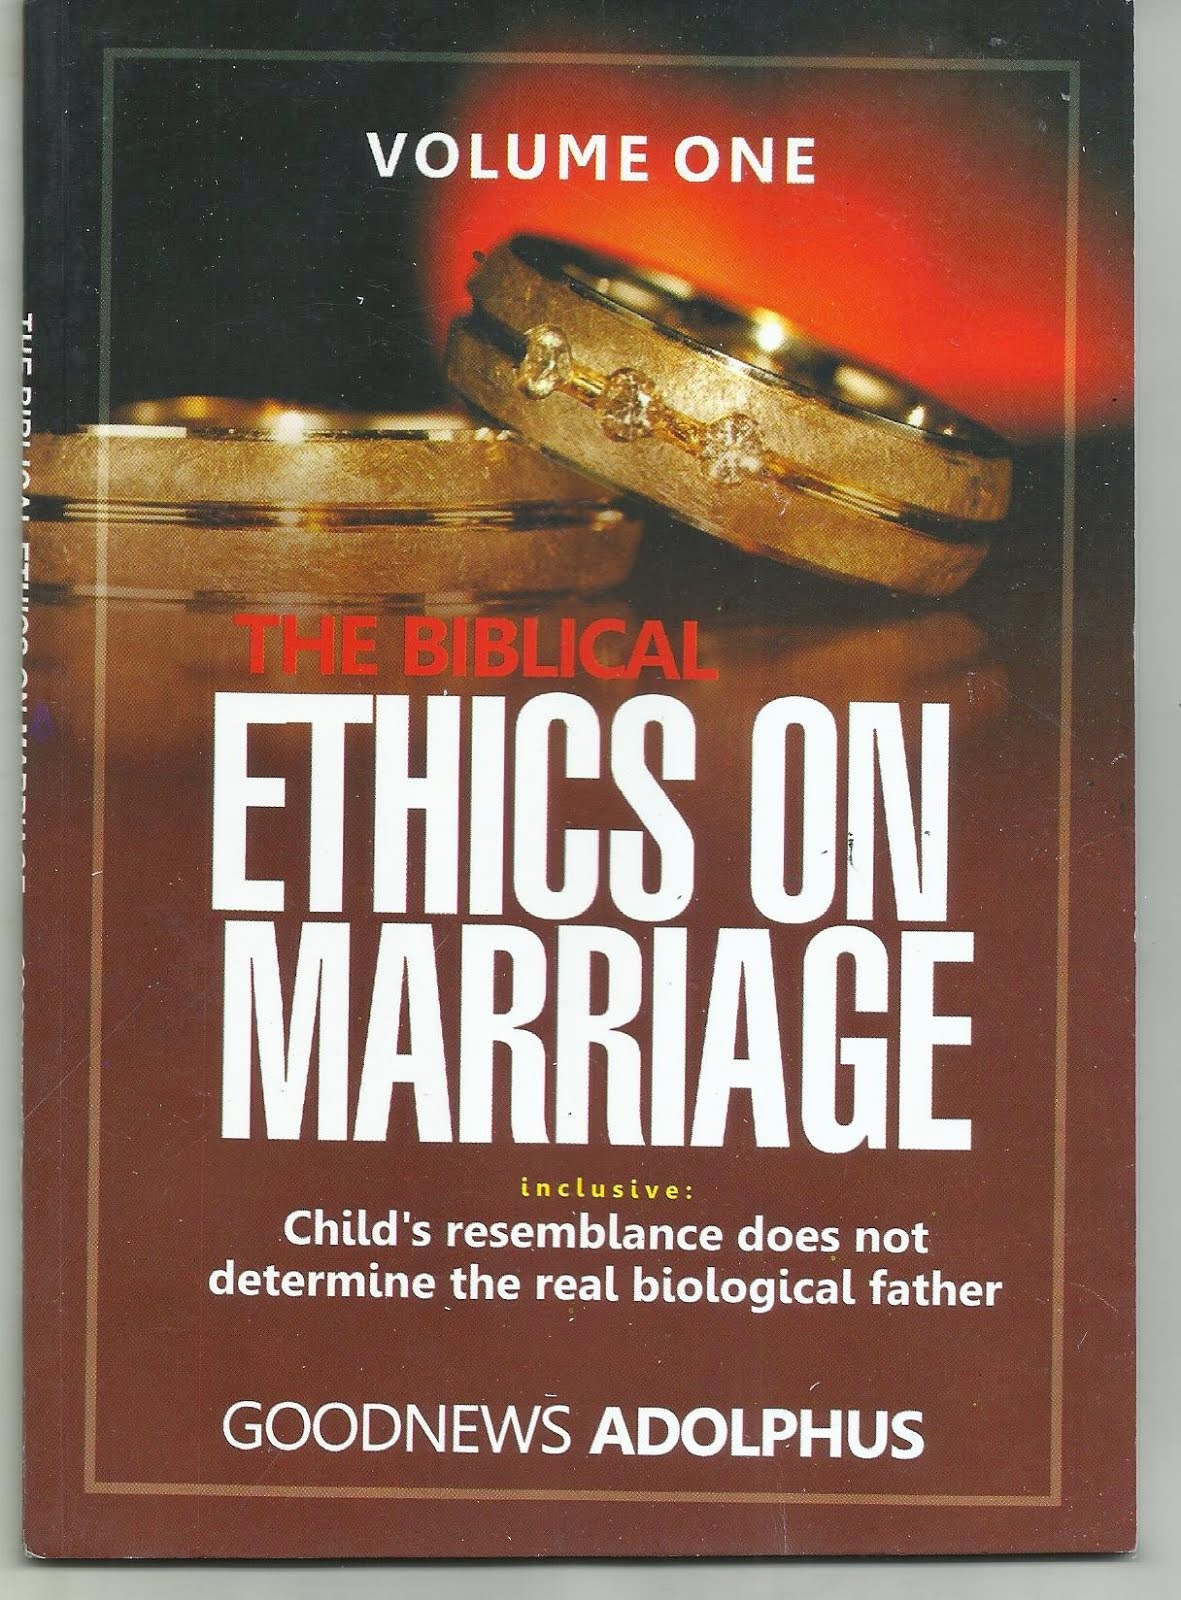 THE BIBLICAL ETHICS ON MARRIAGE